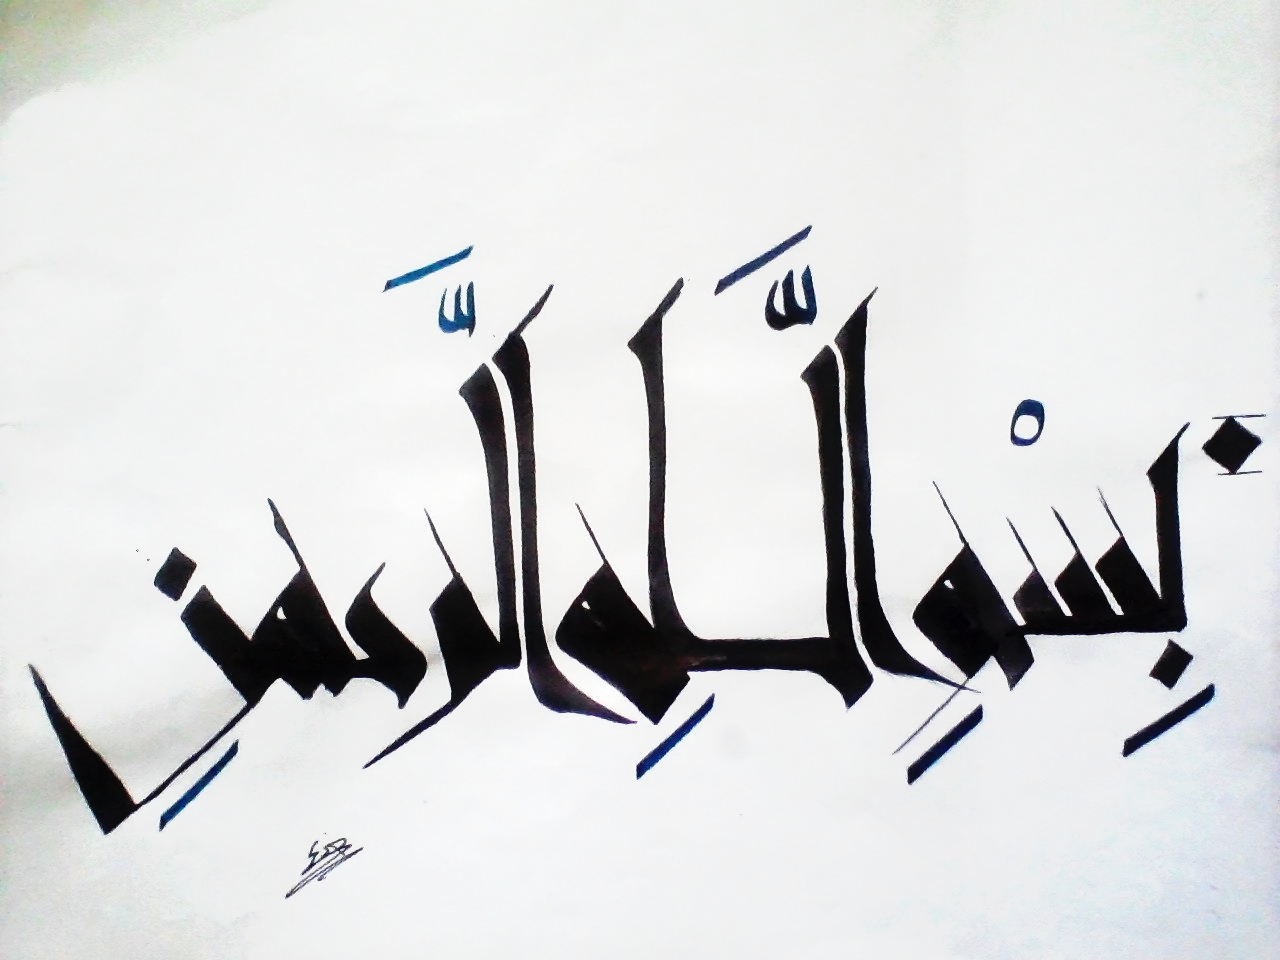 Kufi Calligraphy By Khadigaelghawas On Deviantart